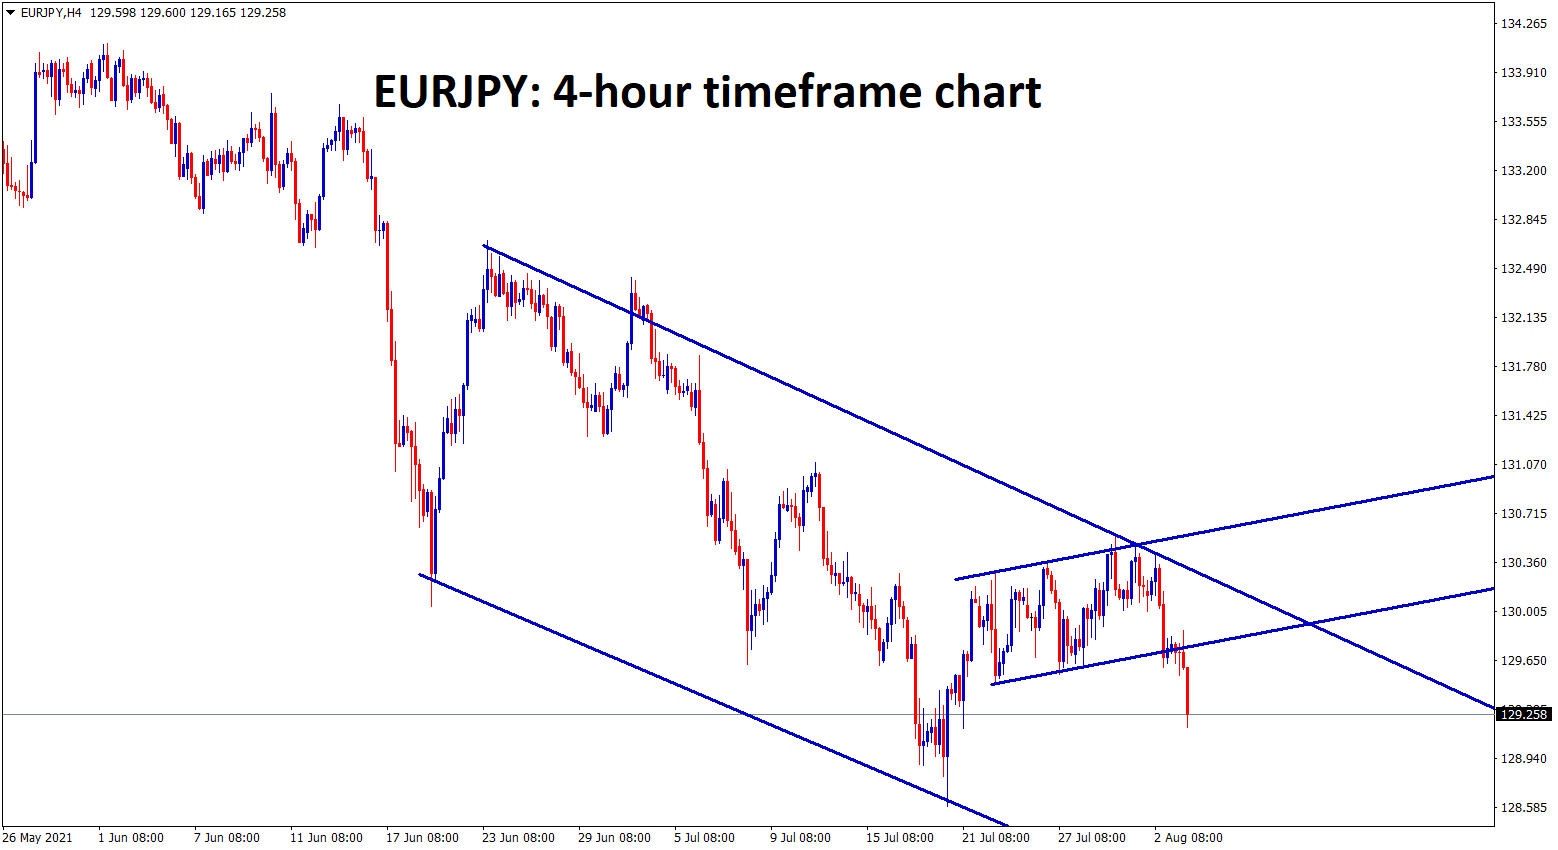 EURJPY is falling in a descending channel and has broken the bottom of the range